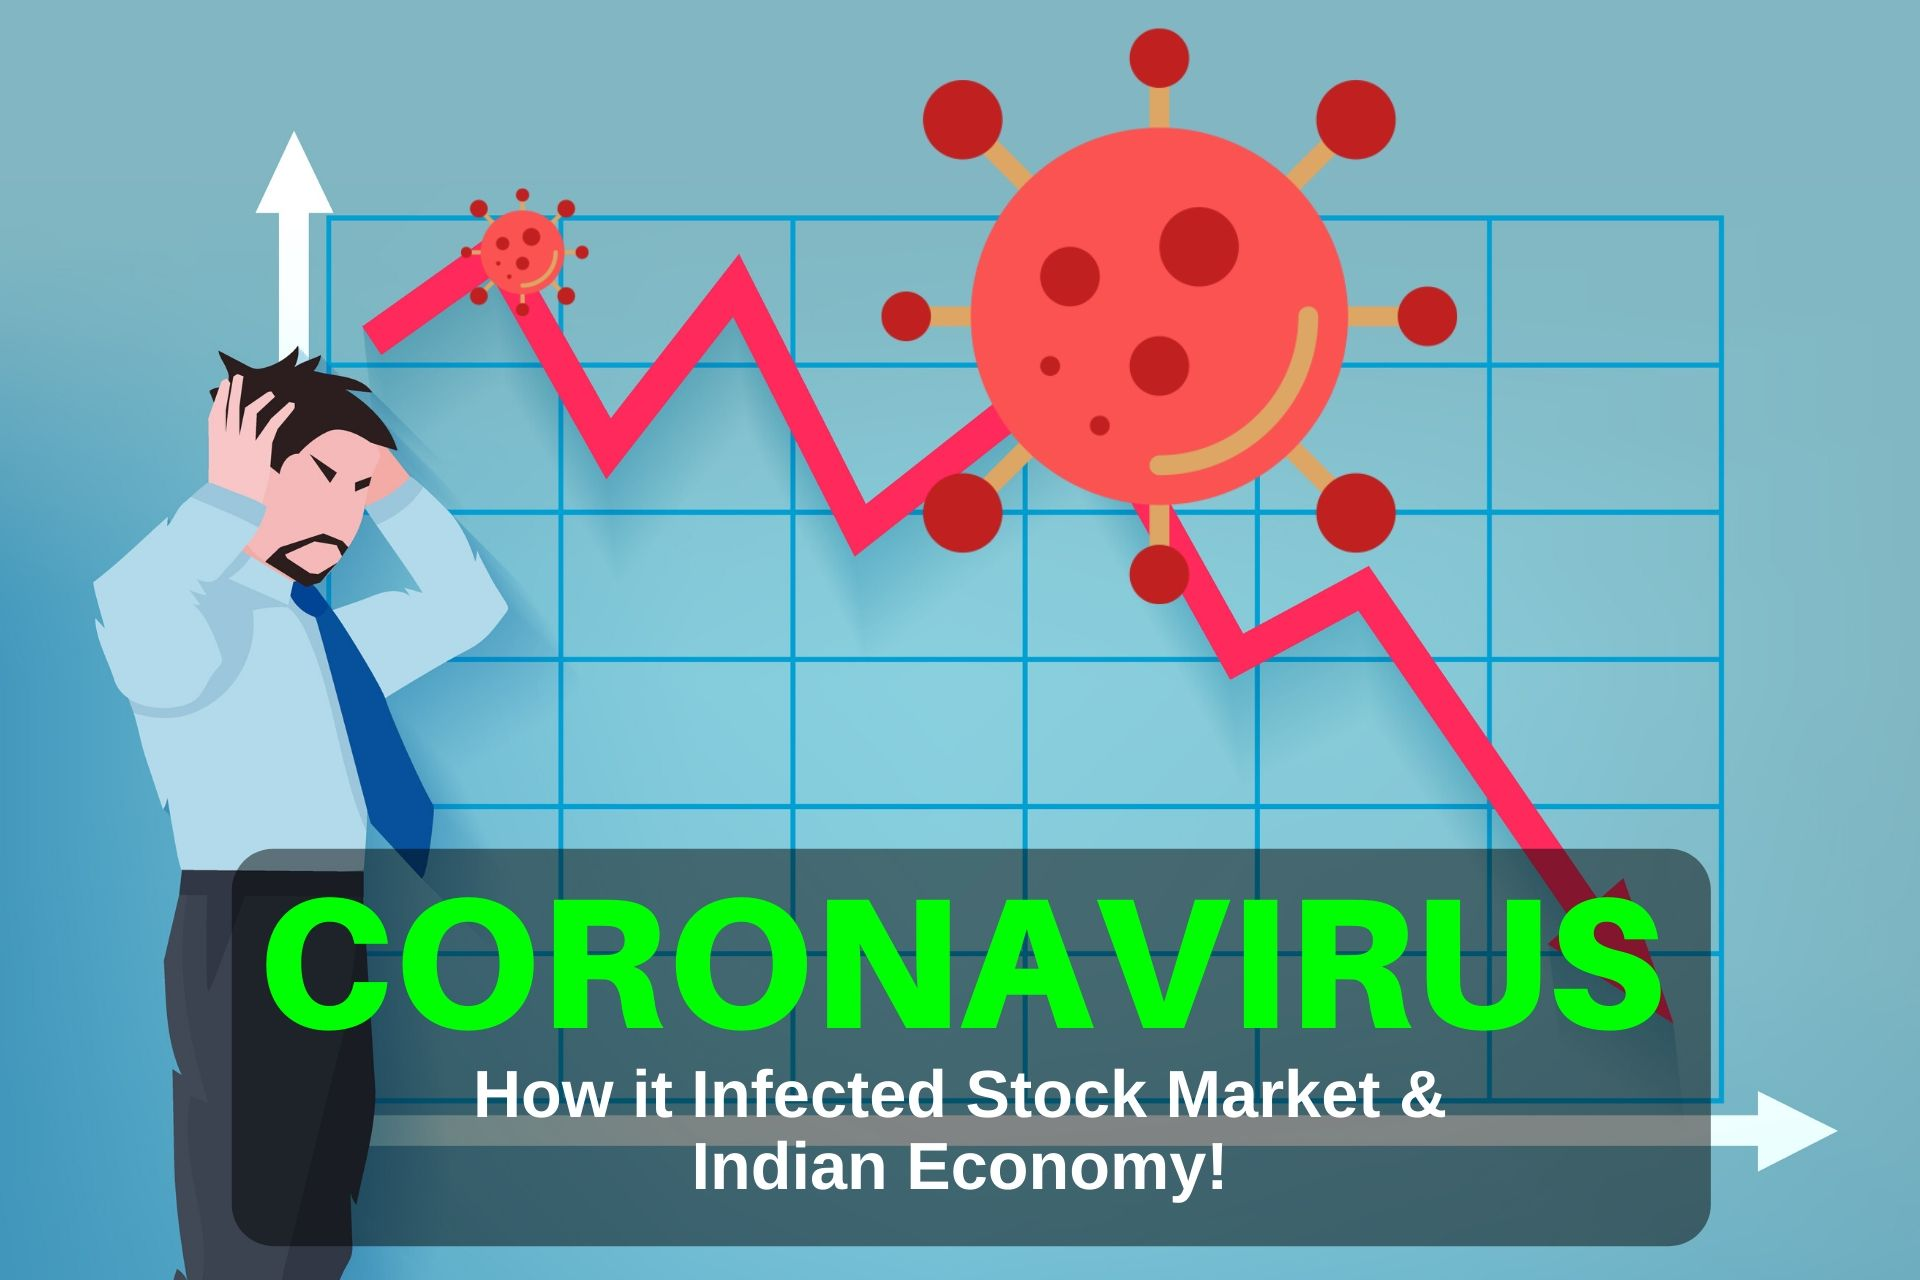 impact of coronavirus on stock market